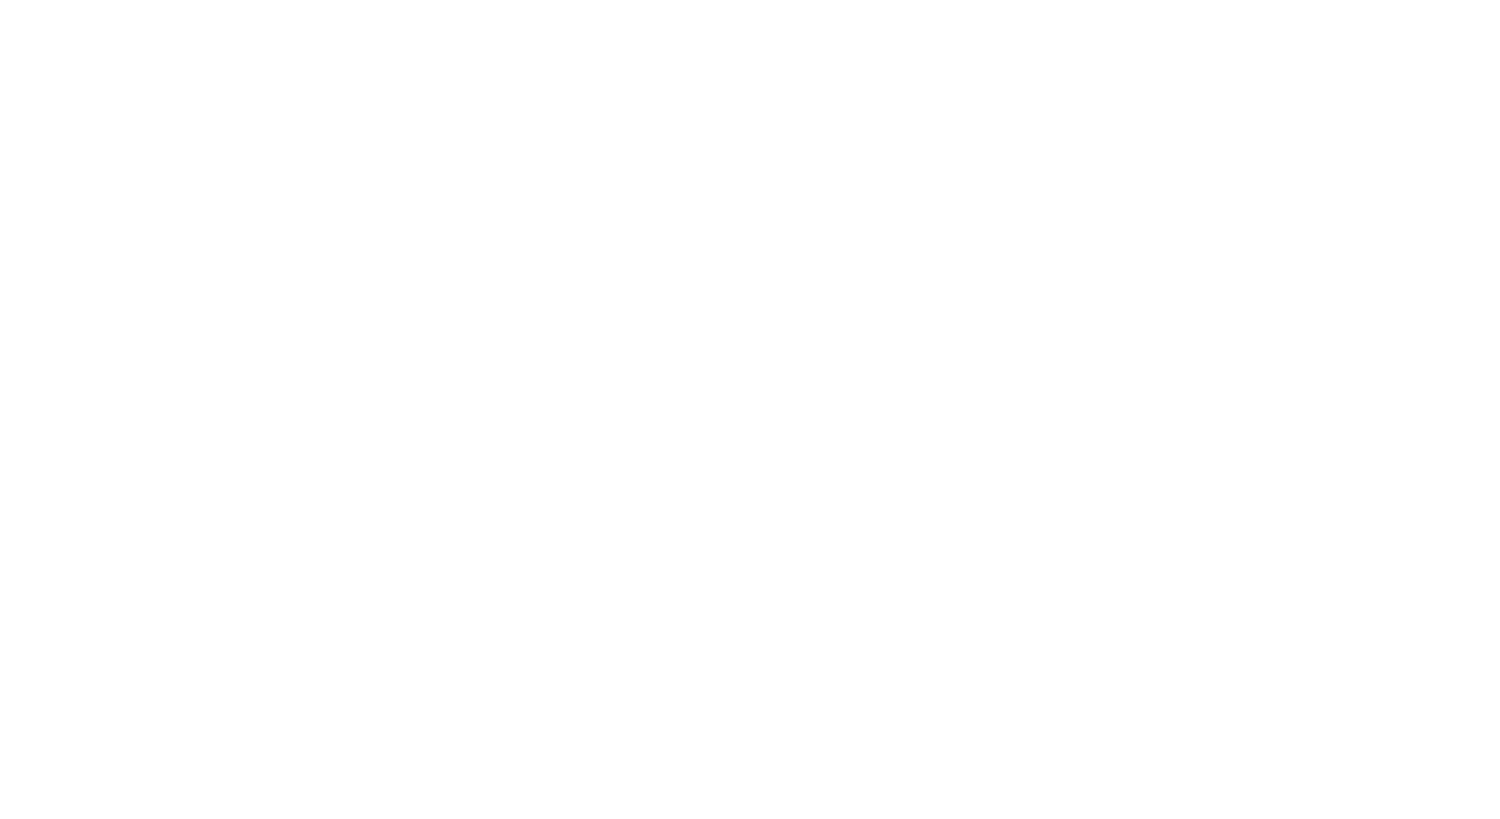 Bluestem Farm | Organic Vegetables and Pasture-Raised Protein